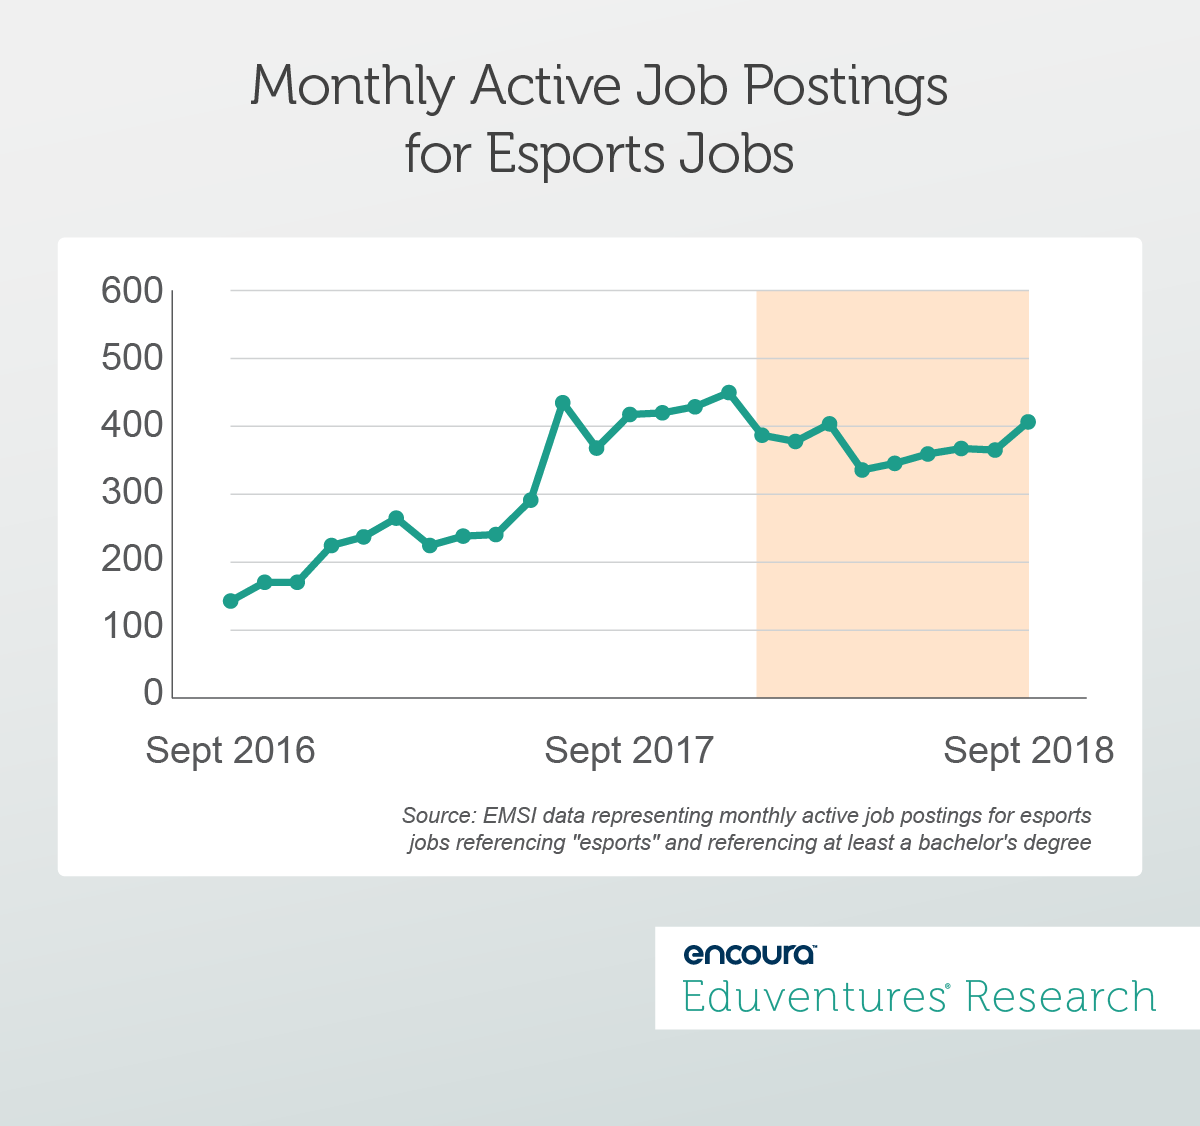 Monthly Active Job Postings for Esports Jobs